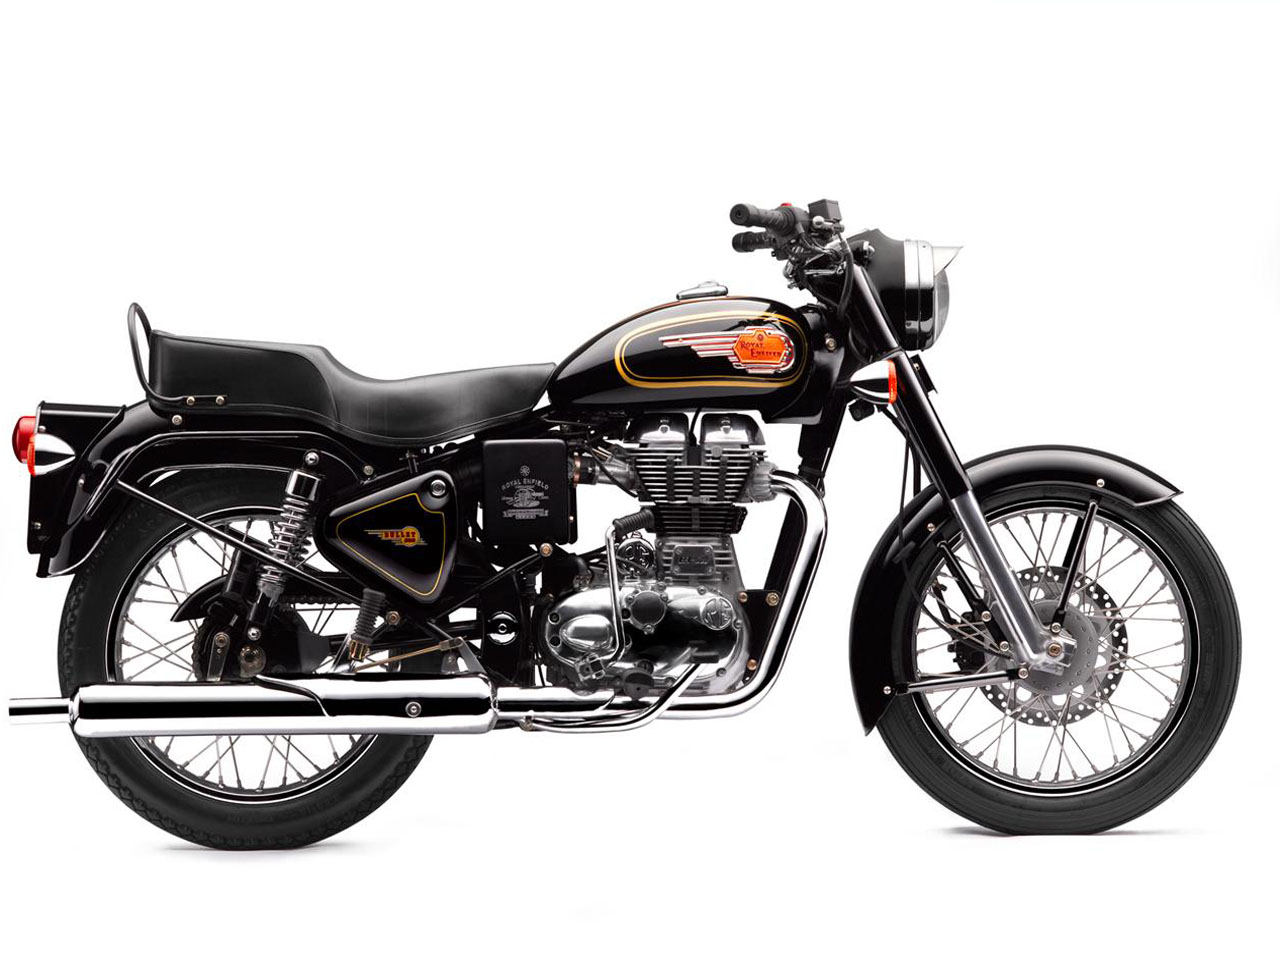 Royal enfield bullett photo - 3